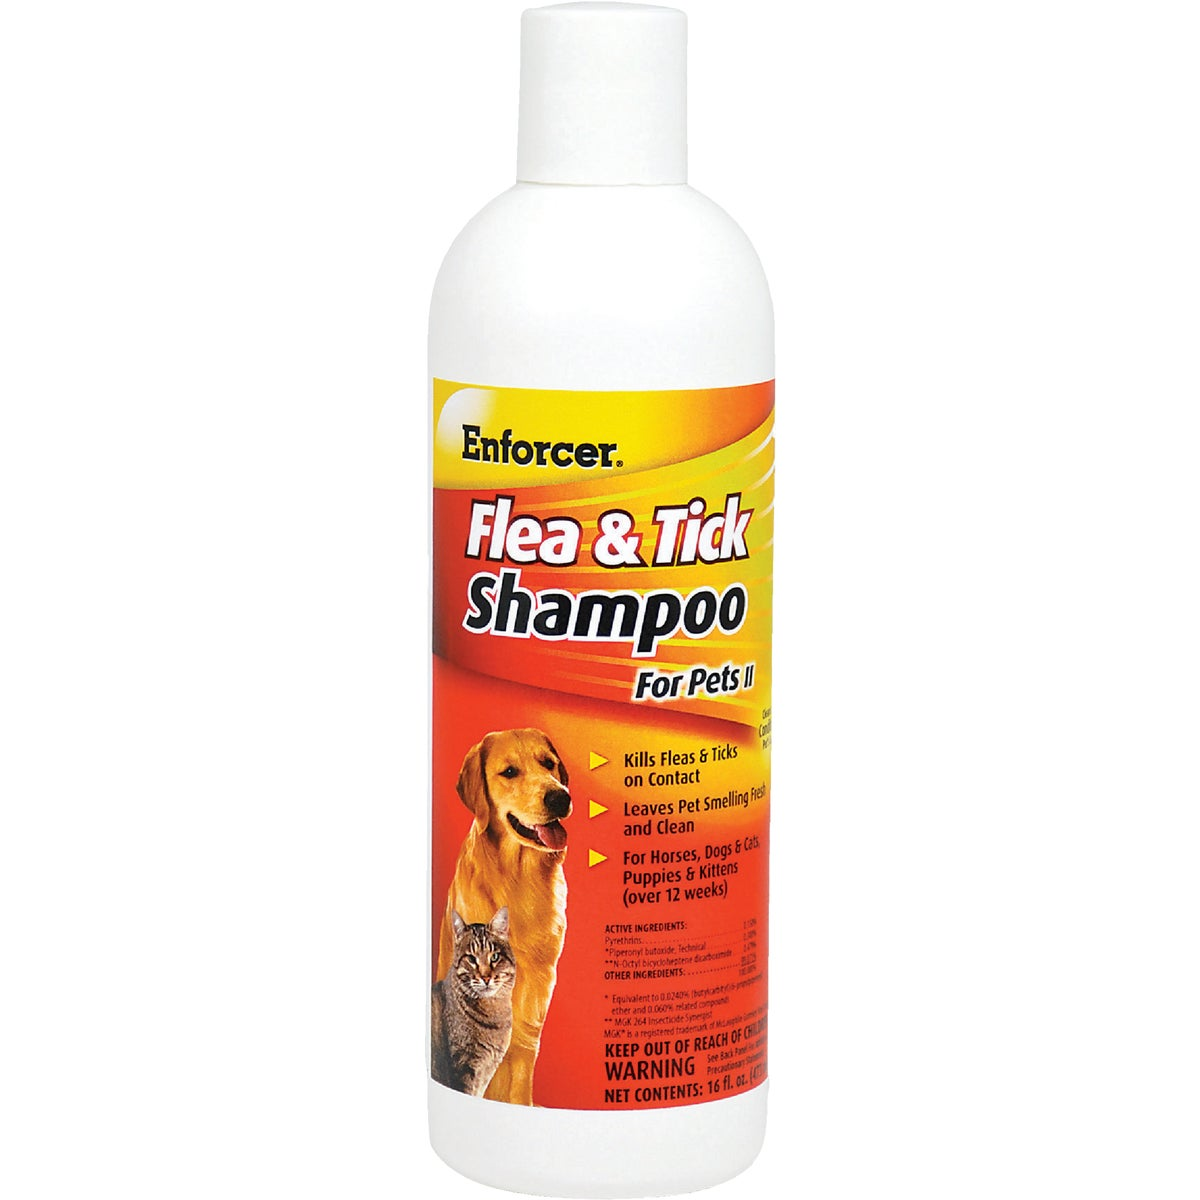 FLEA/TICK PET SHAMPOO - EPS16 by Zep Enforcer Inc